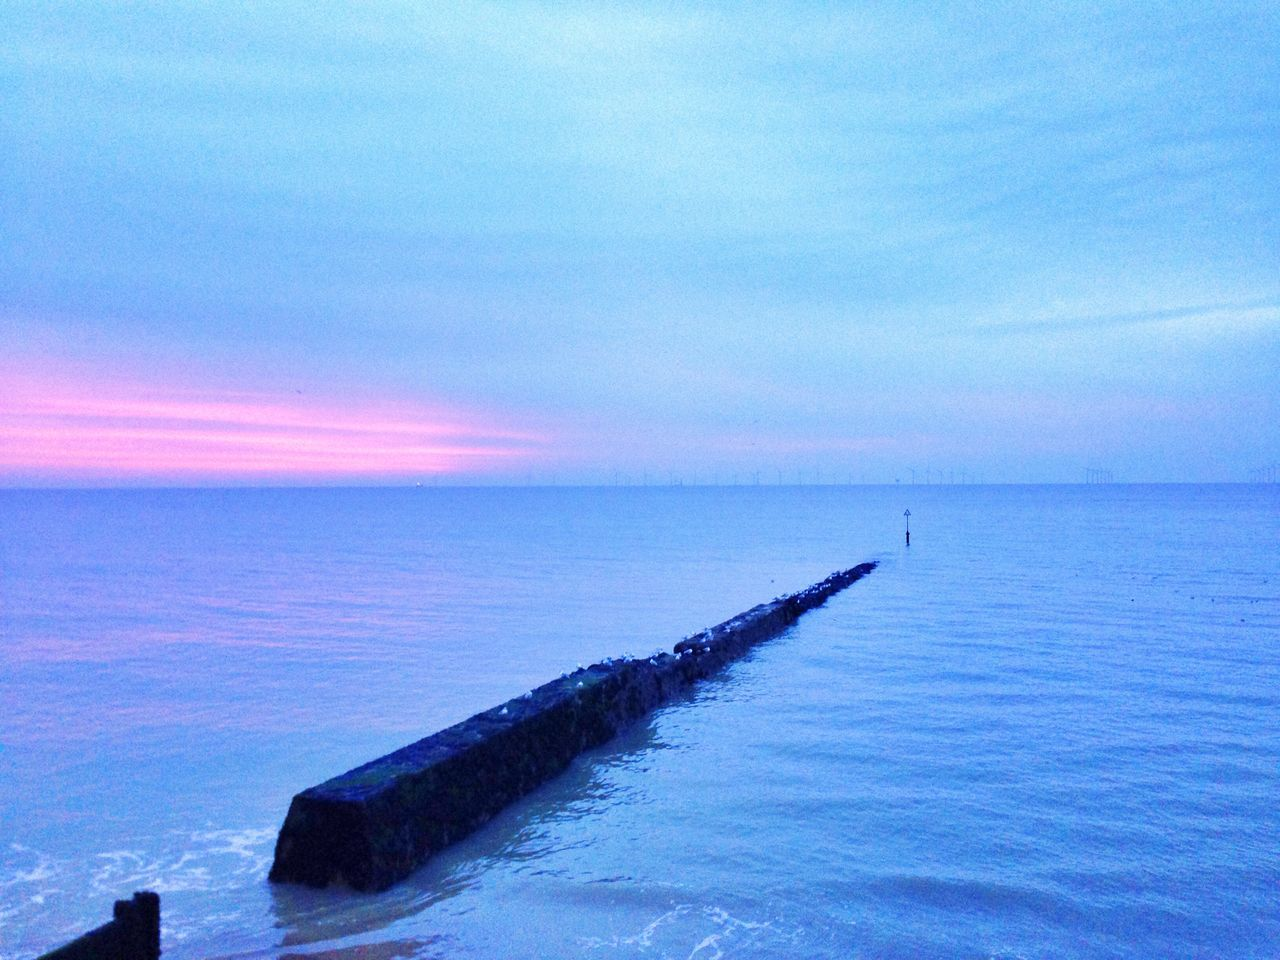 Scenic View Of Sea With Groyne During Sunset